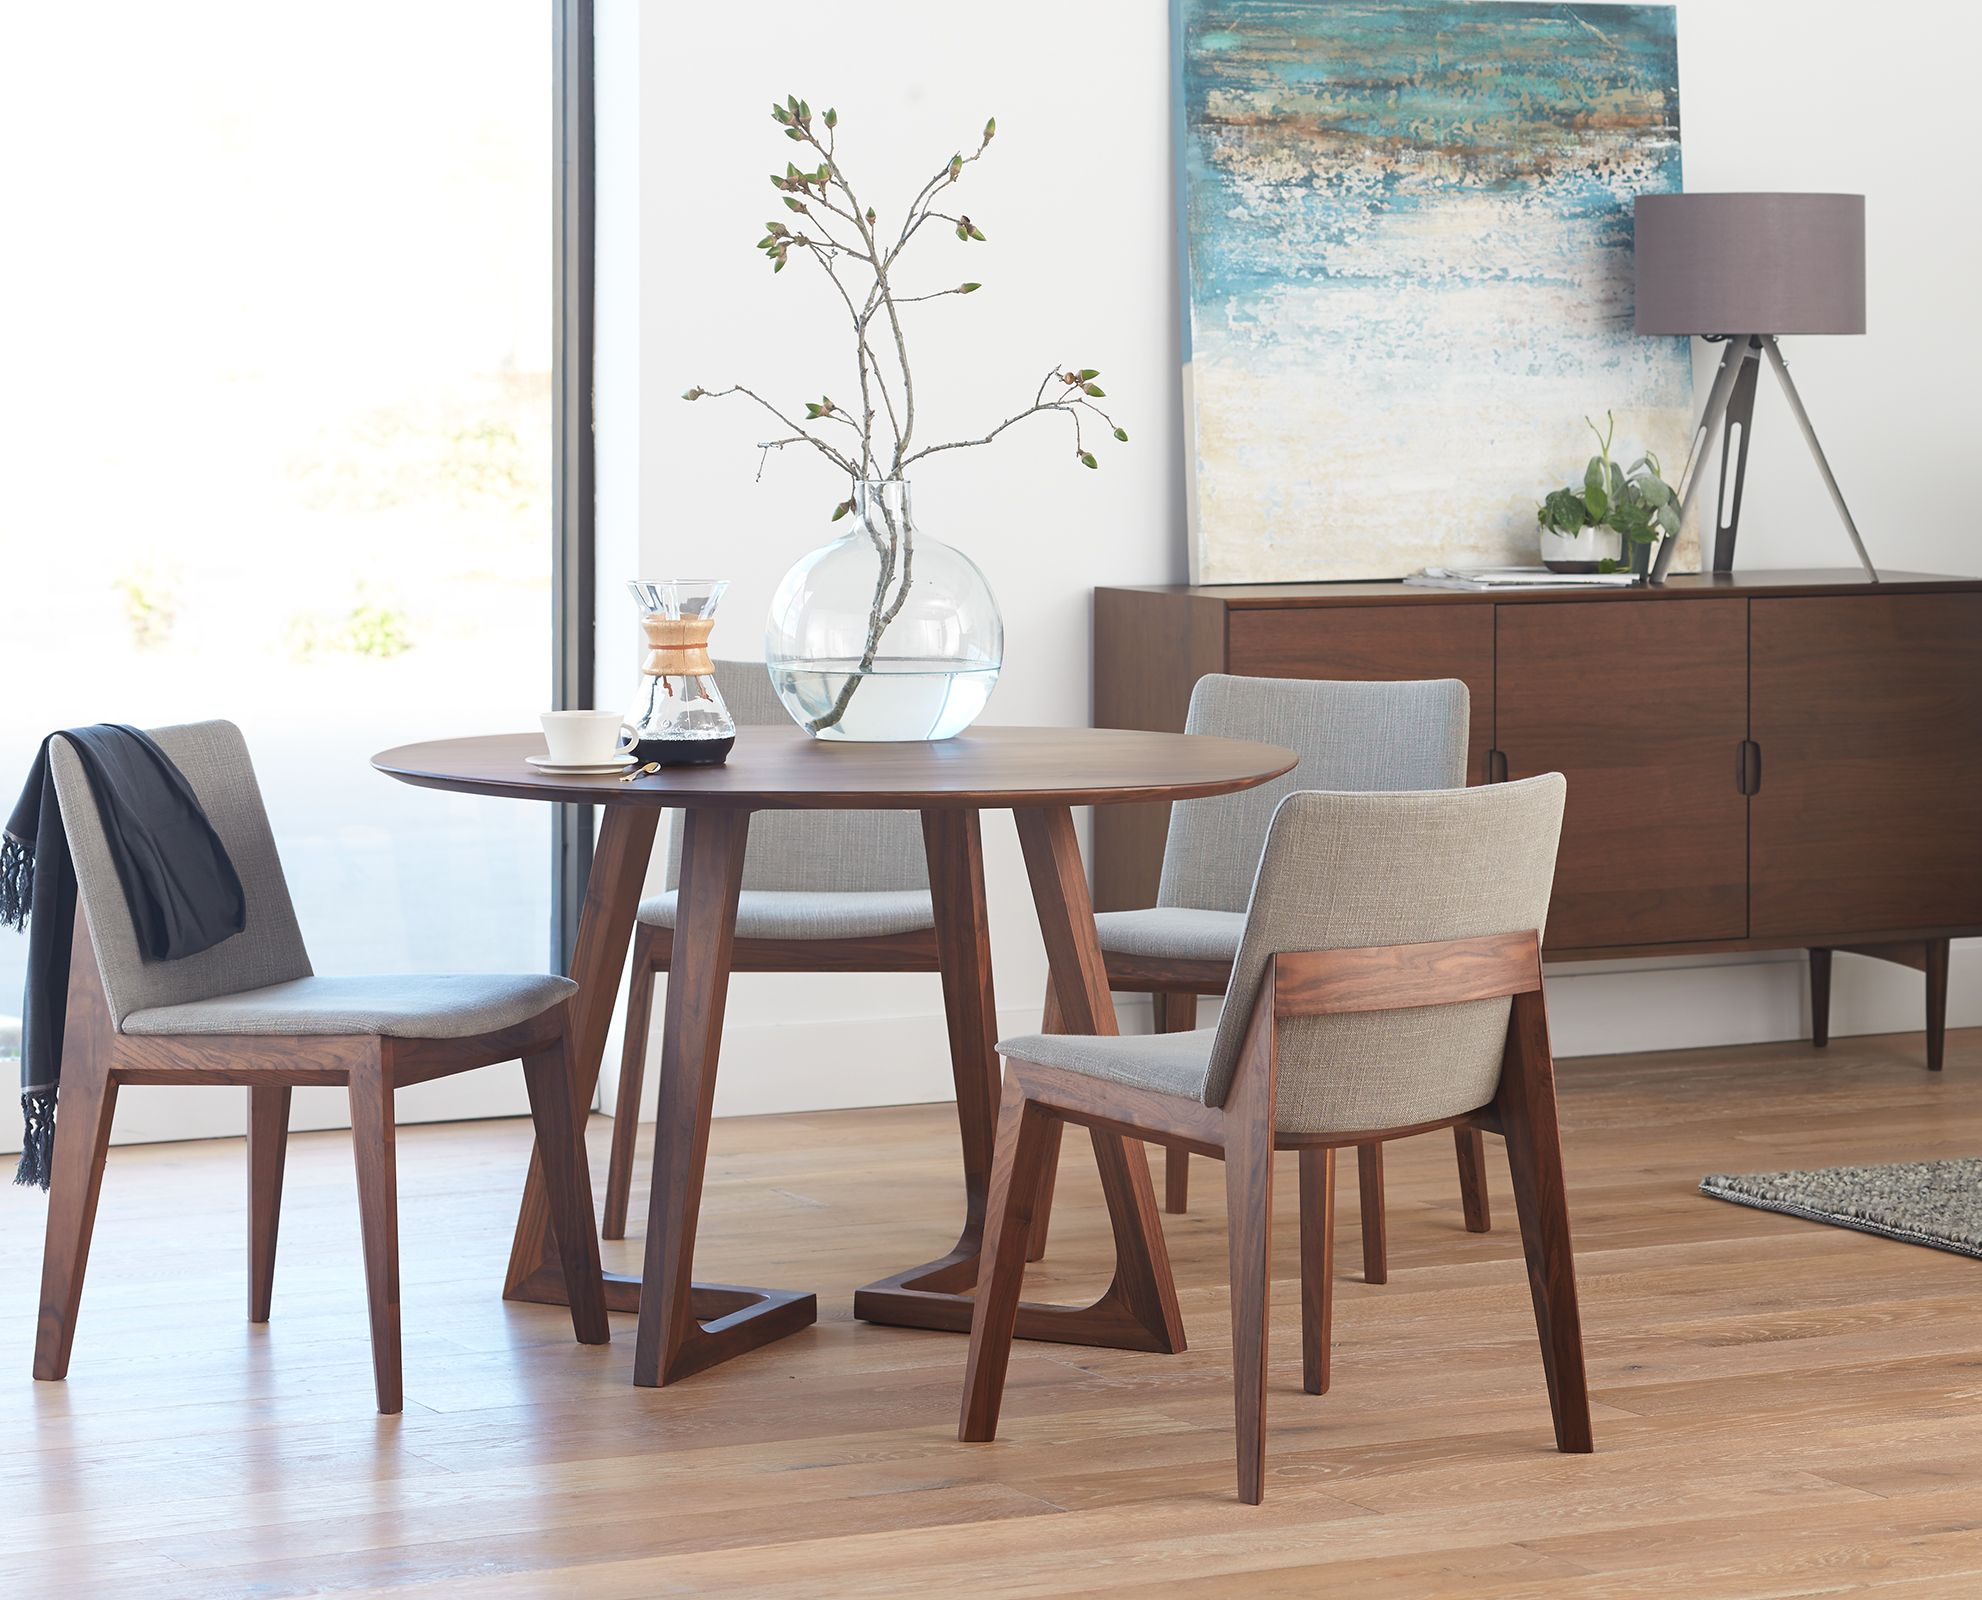 Round table and chairs from Dania | Condo | Kitchen table ...